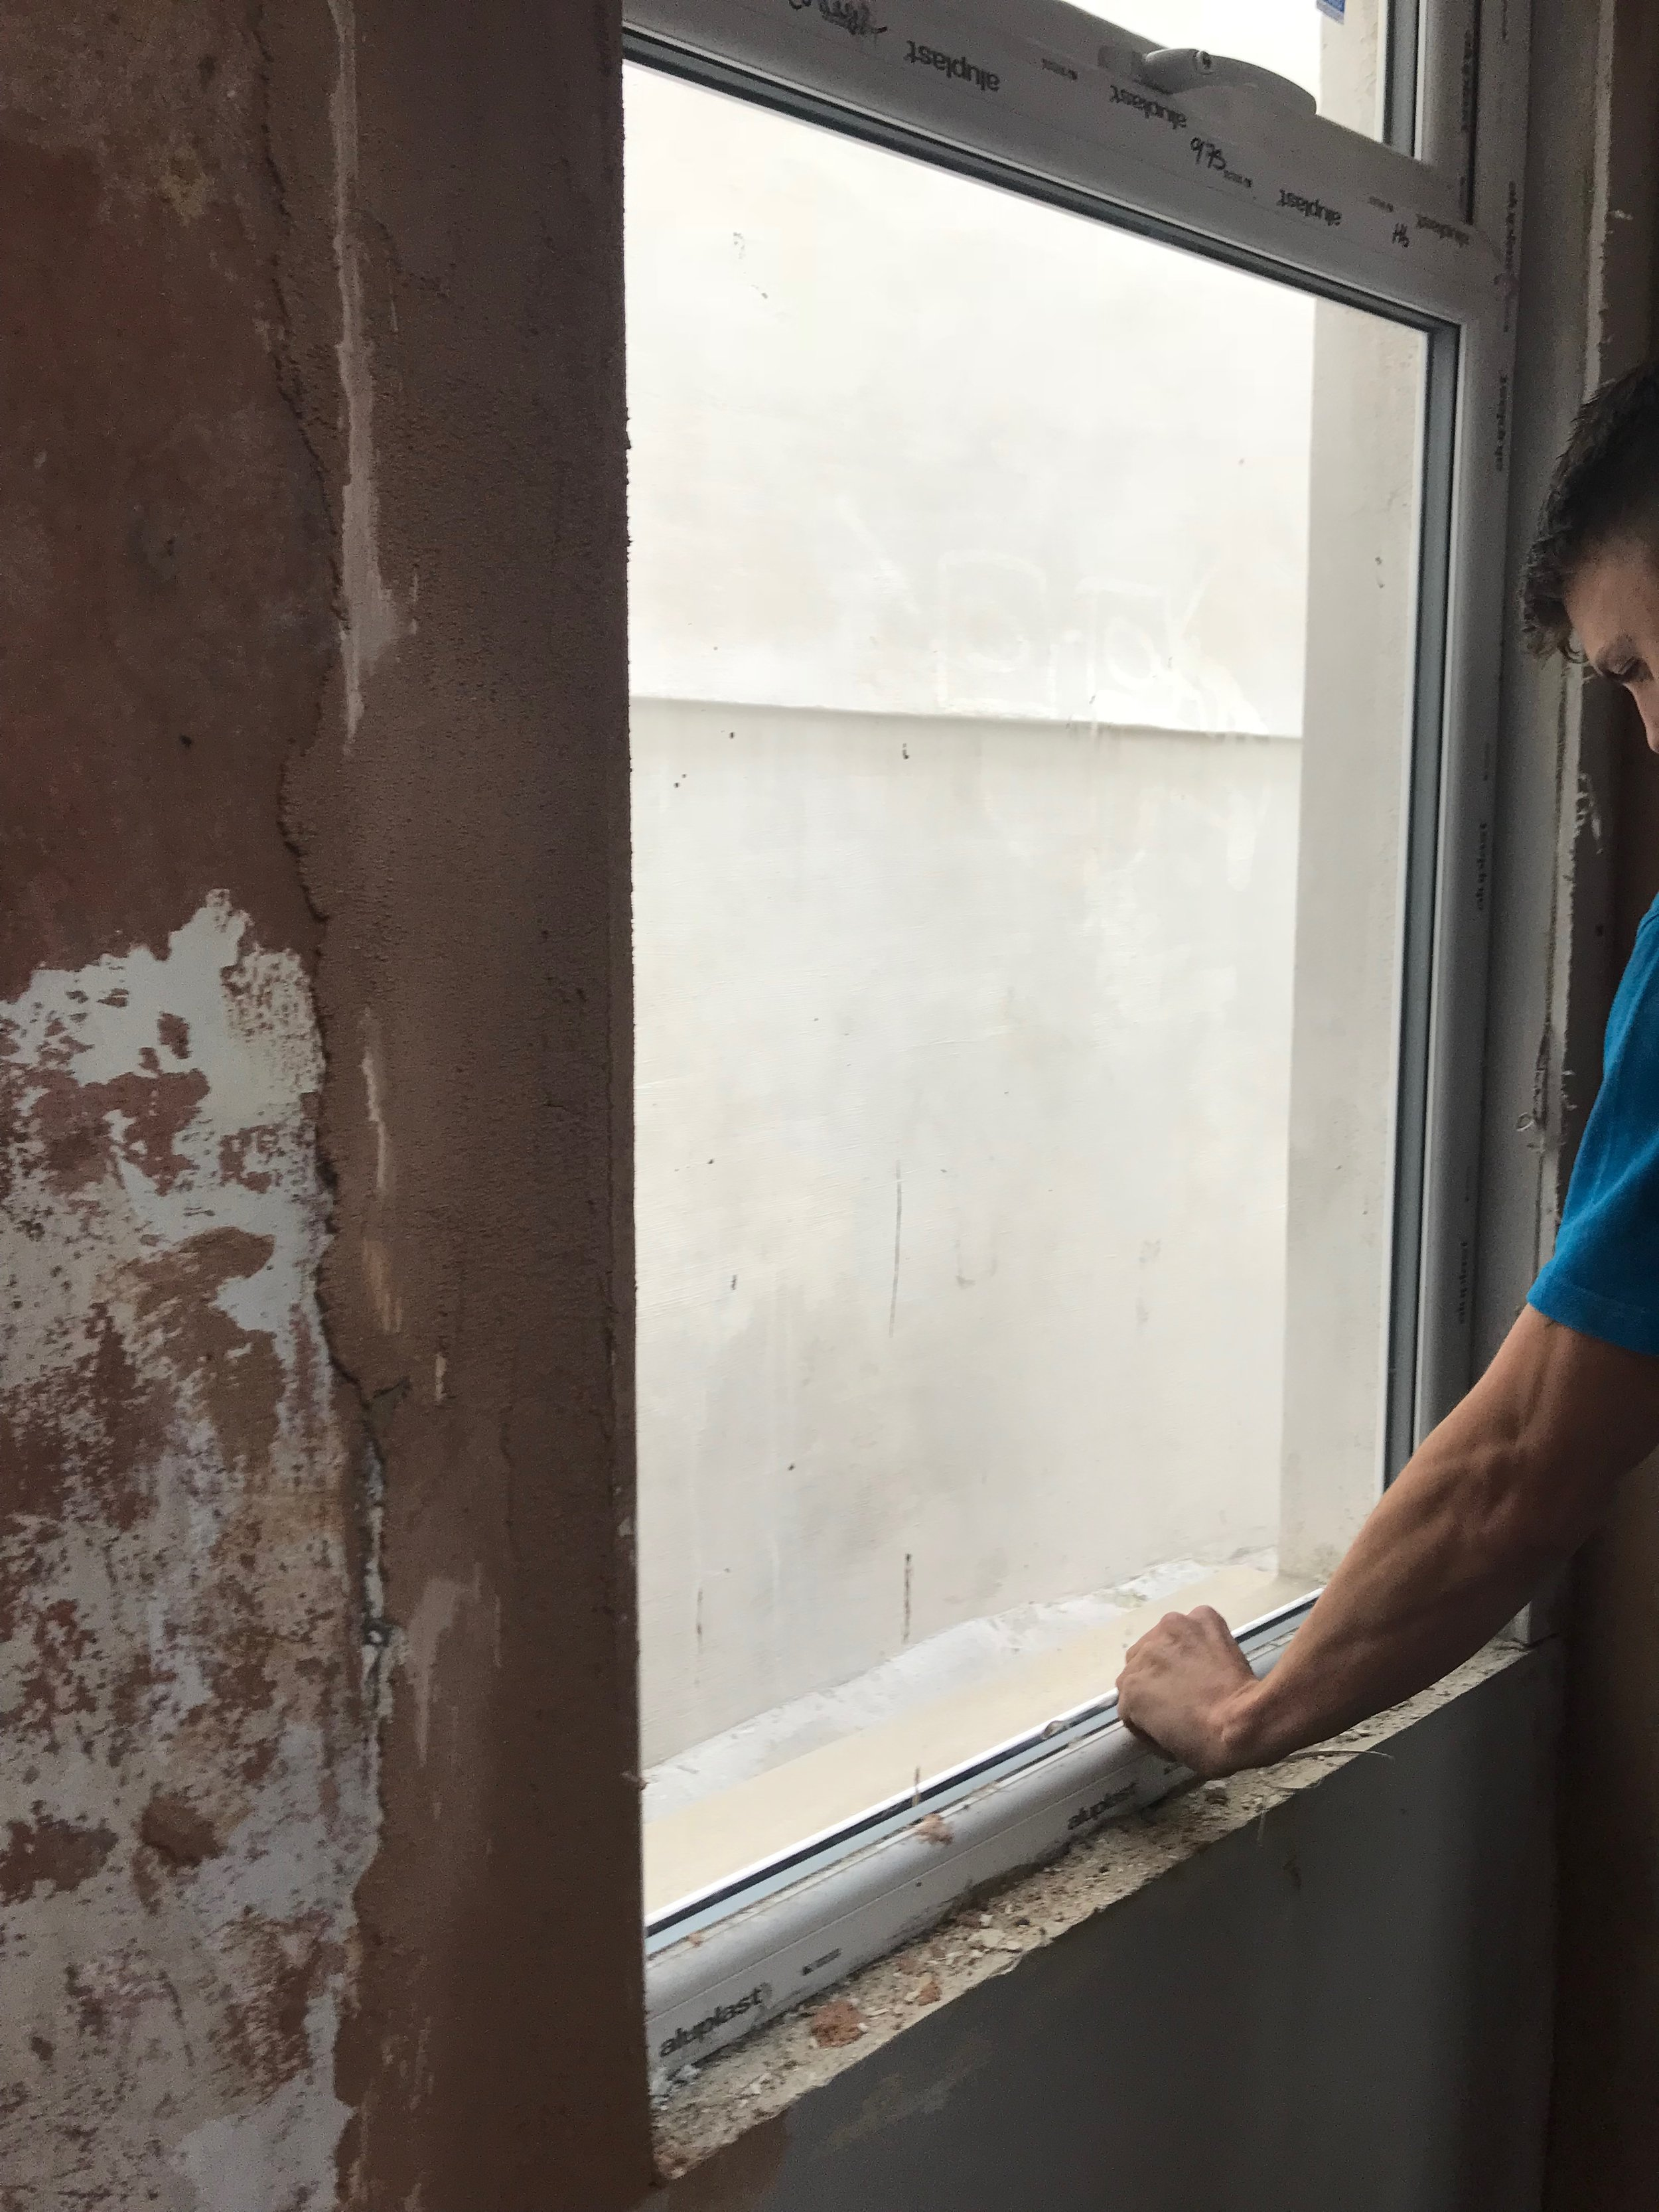 ben inspecting the new windows fitted at a property in South Wales.